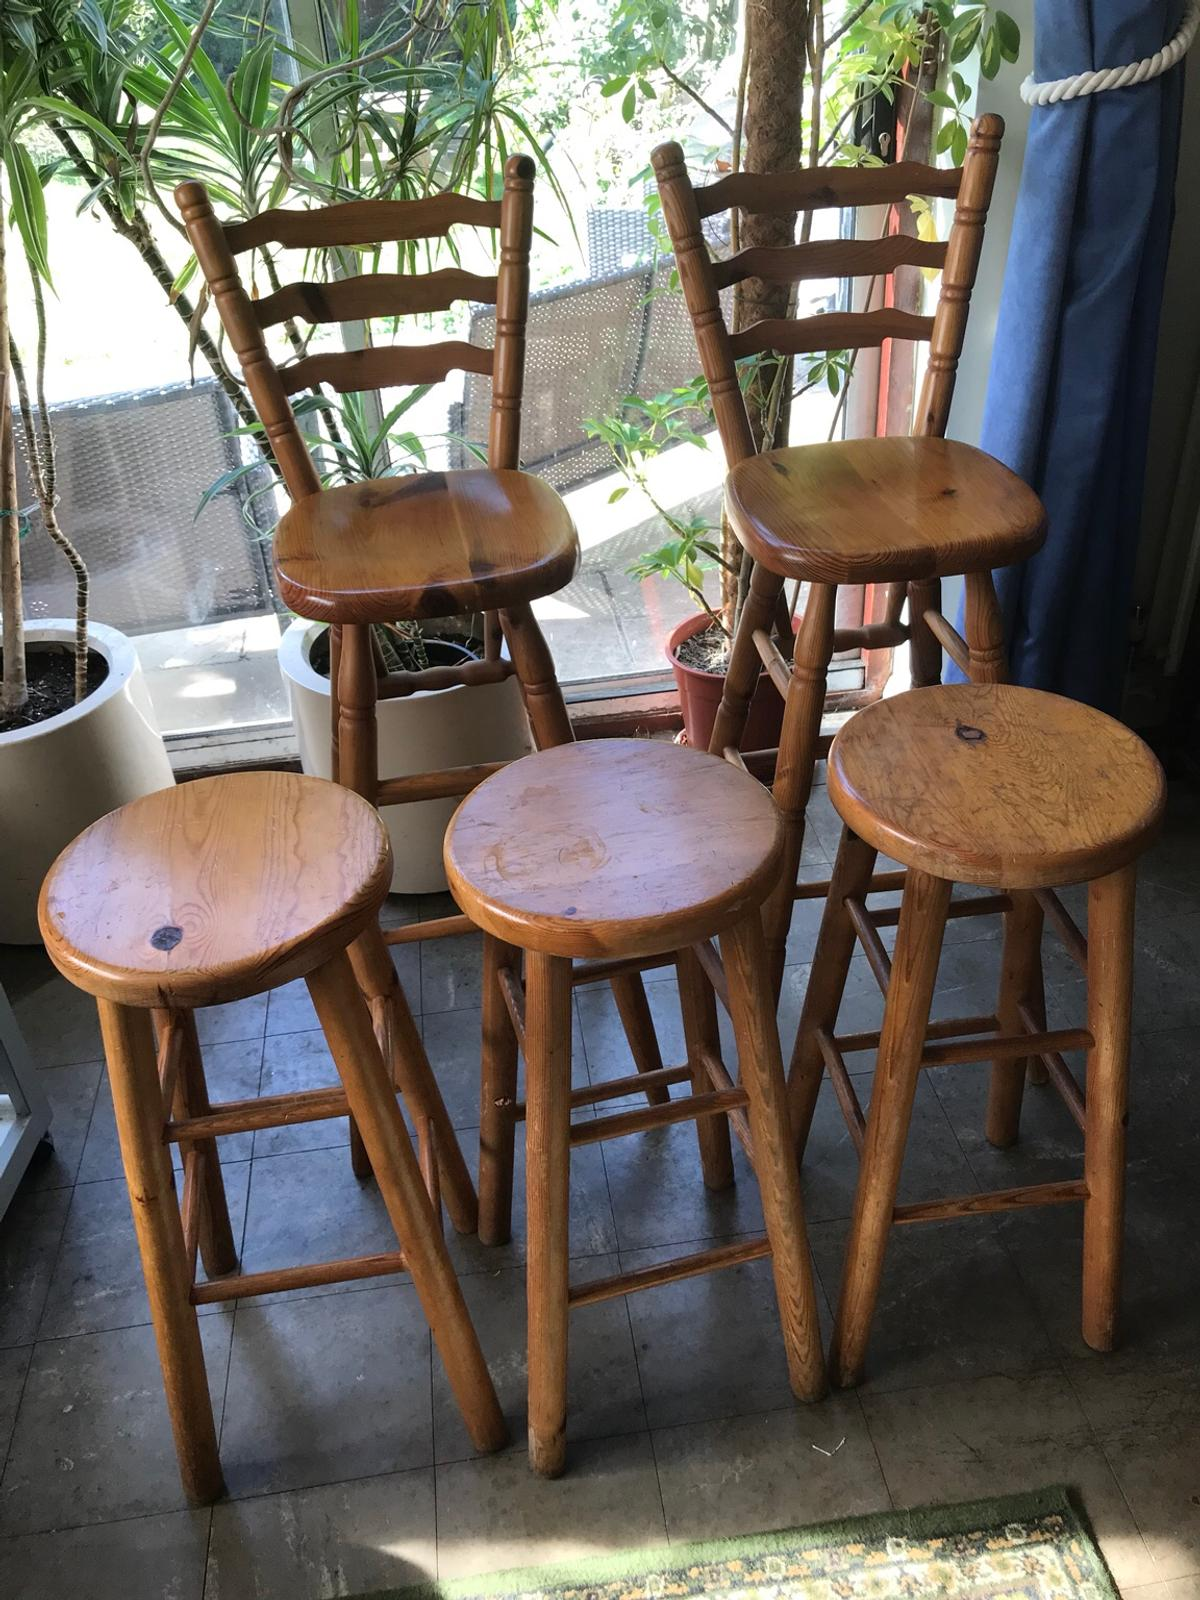 Wondrous Solid Pine Breakfast Bar Stools In Kt8 Elmbridge For 75 00 Caraccident5 Cool Chair Designs And Ideas Caraccident5Info